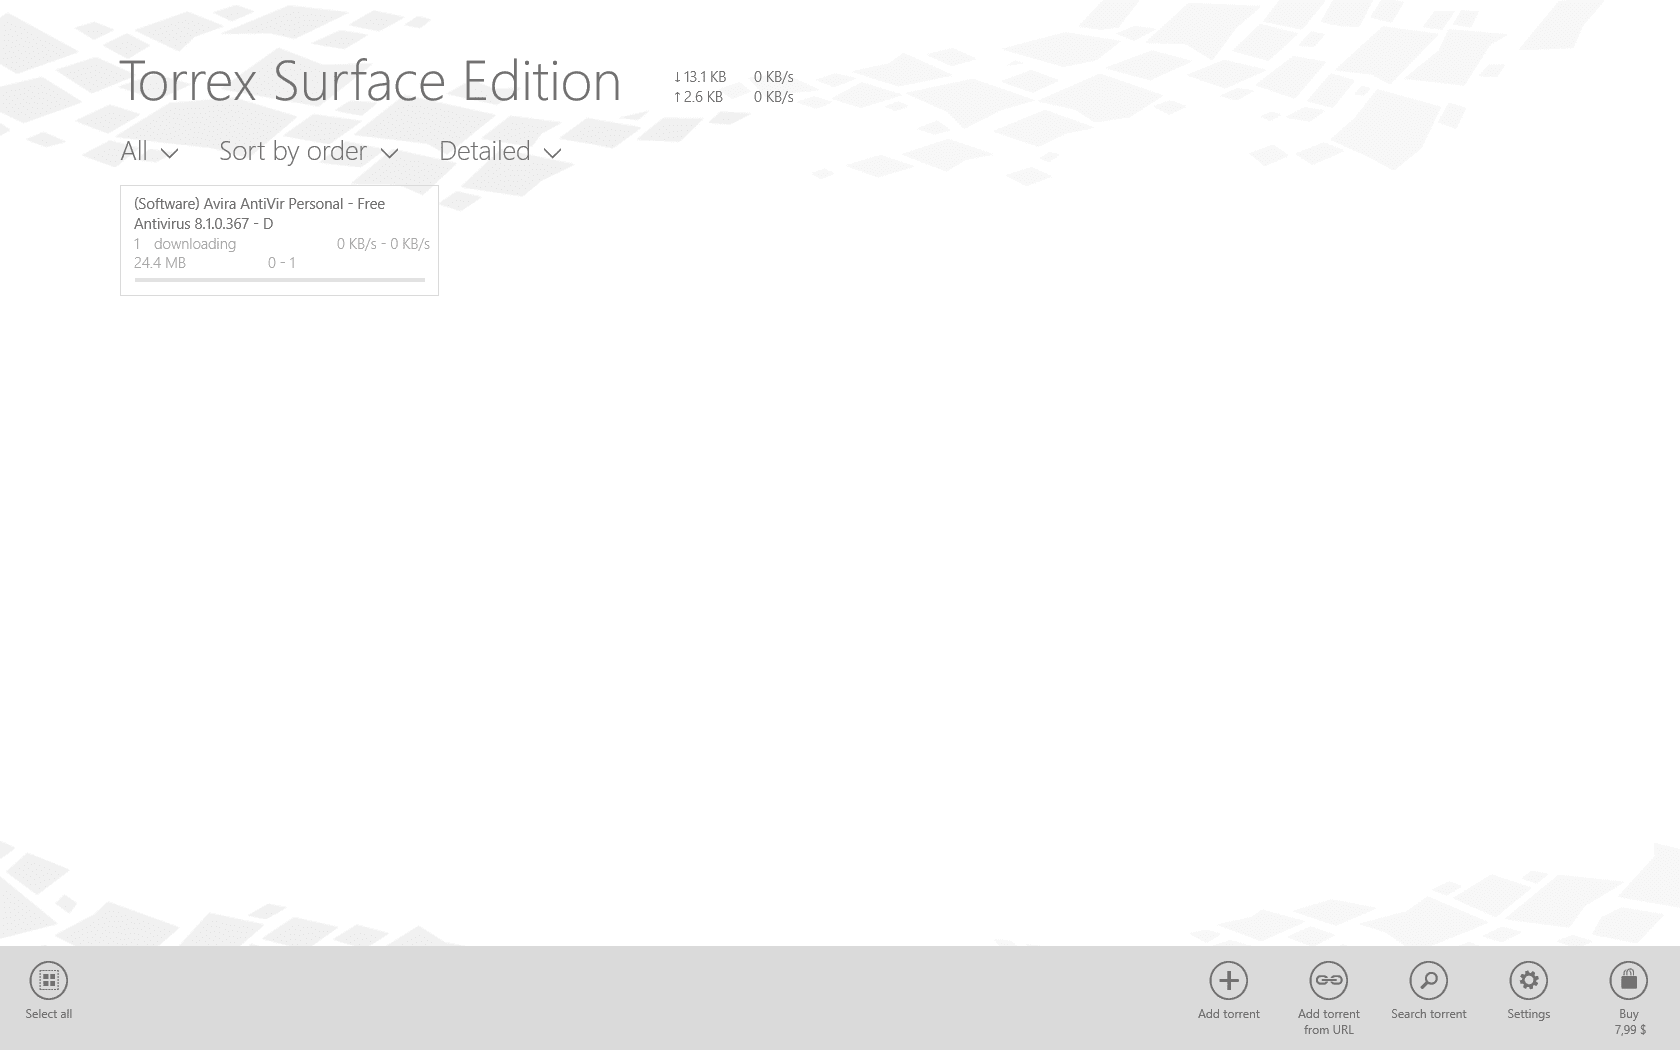 Torrex Surface Edition for Windows 10